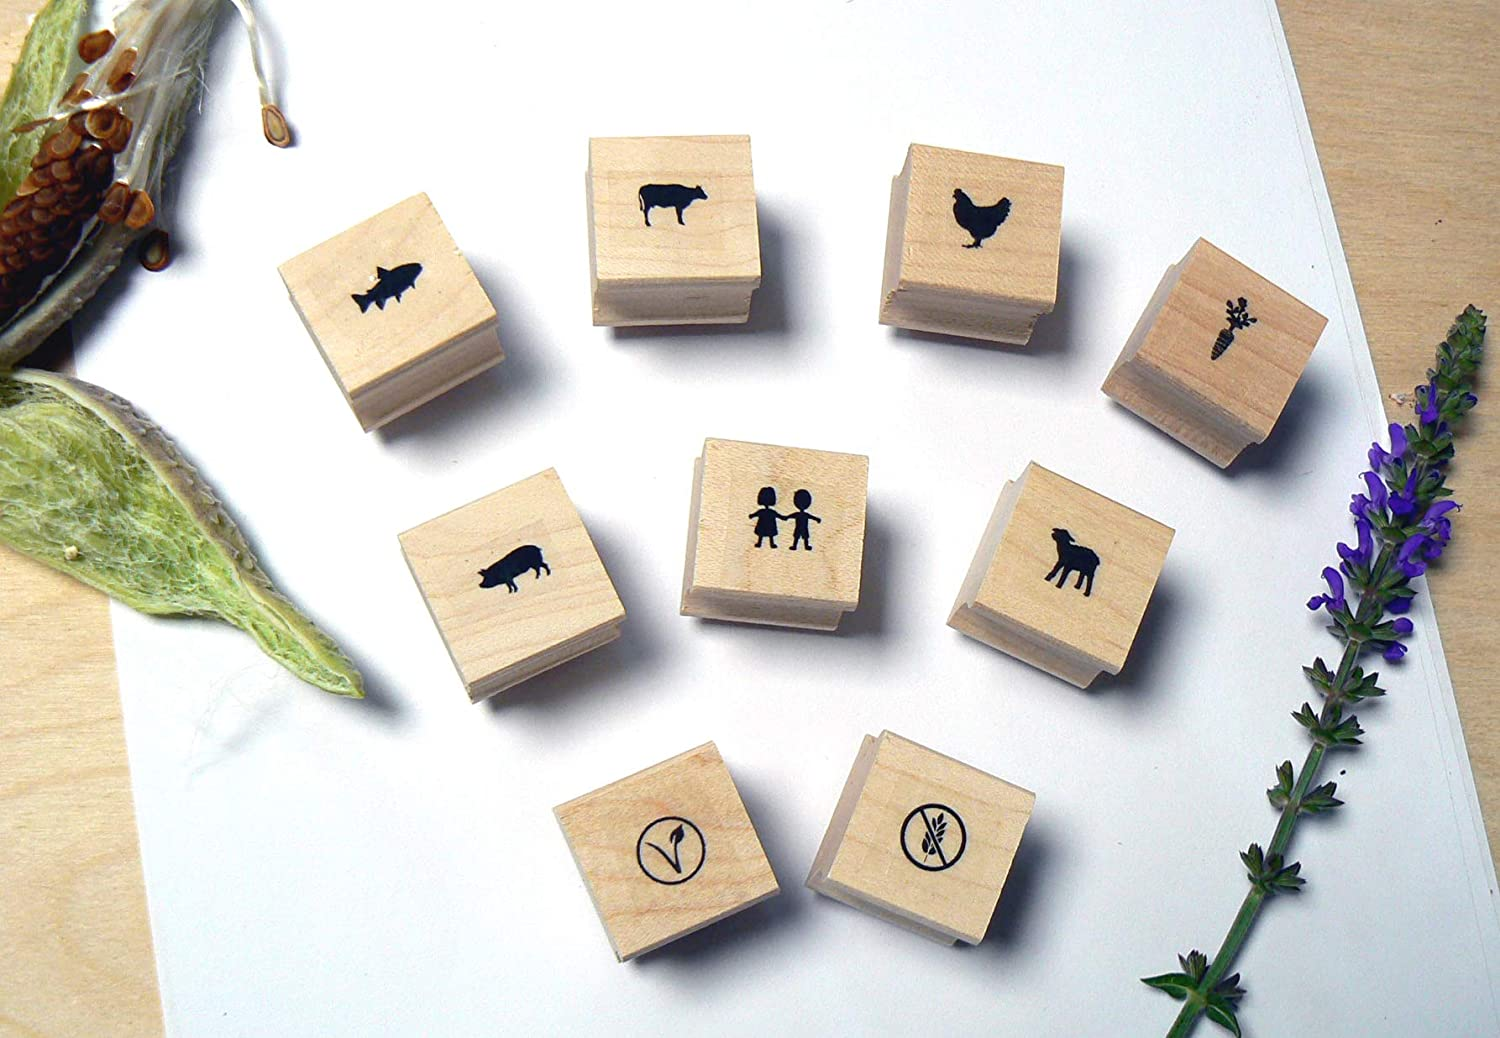 P120 Food Choice - Menu - Icons -Rubber Stamp Set- 9 Miniatures